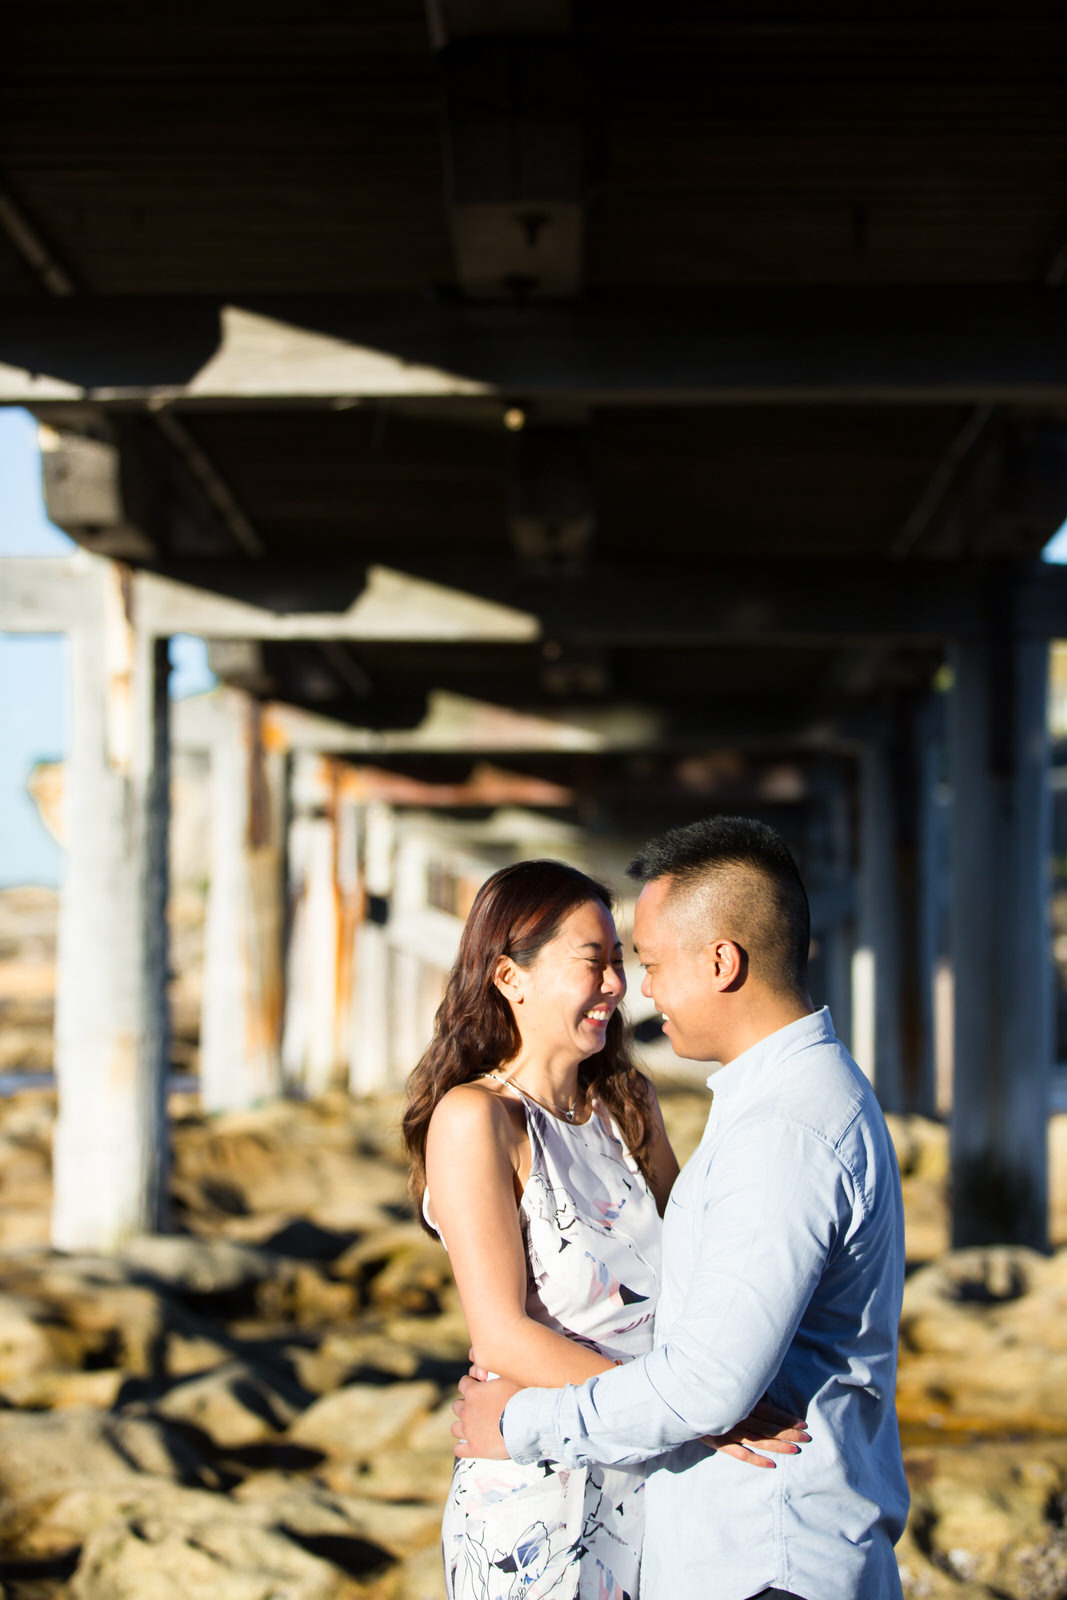 Sydney Engagement Pre-Wedding Photography Session - Jennifer Lam Photography - La Perouse (24).jpg